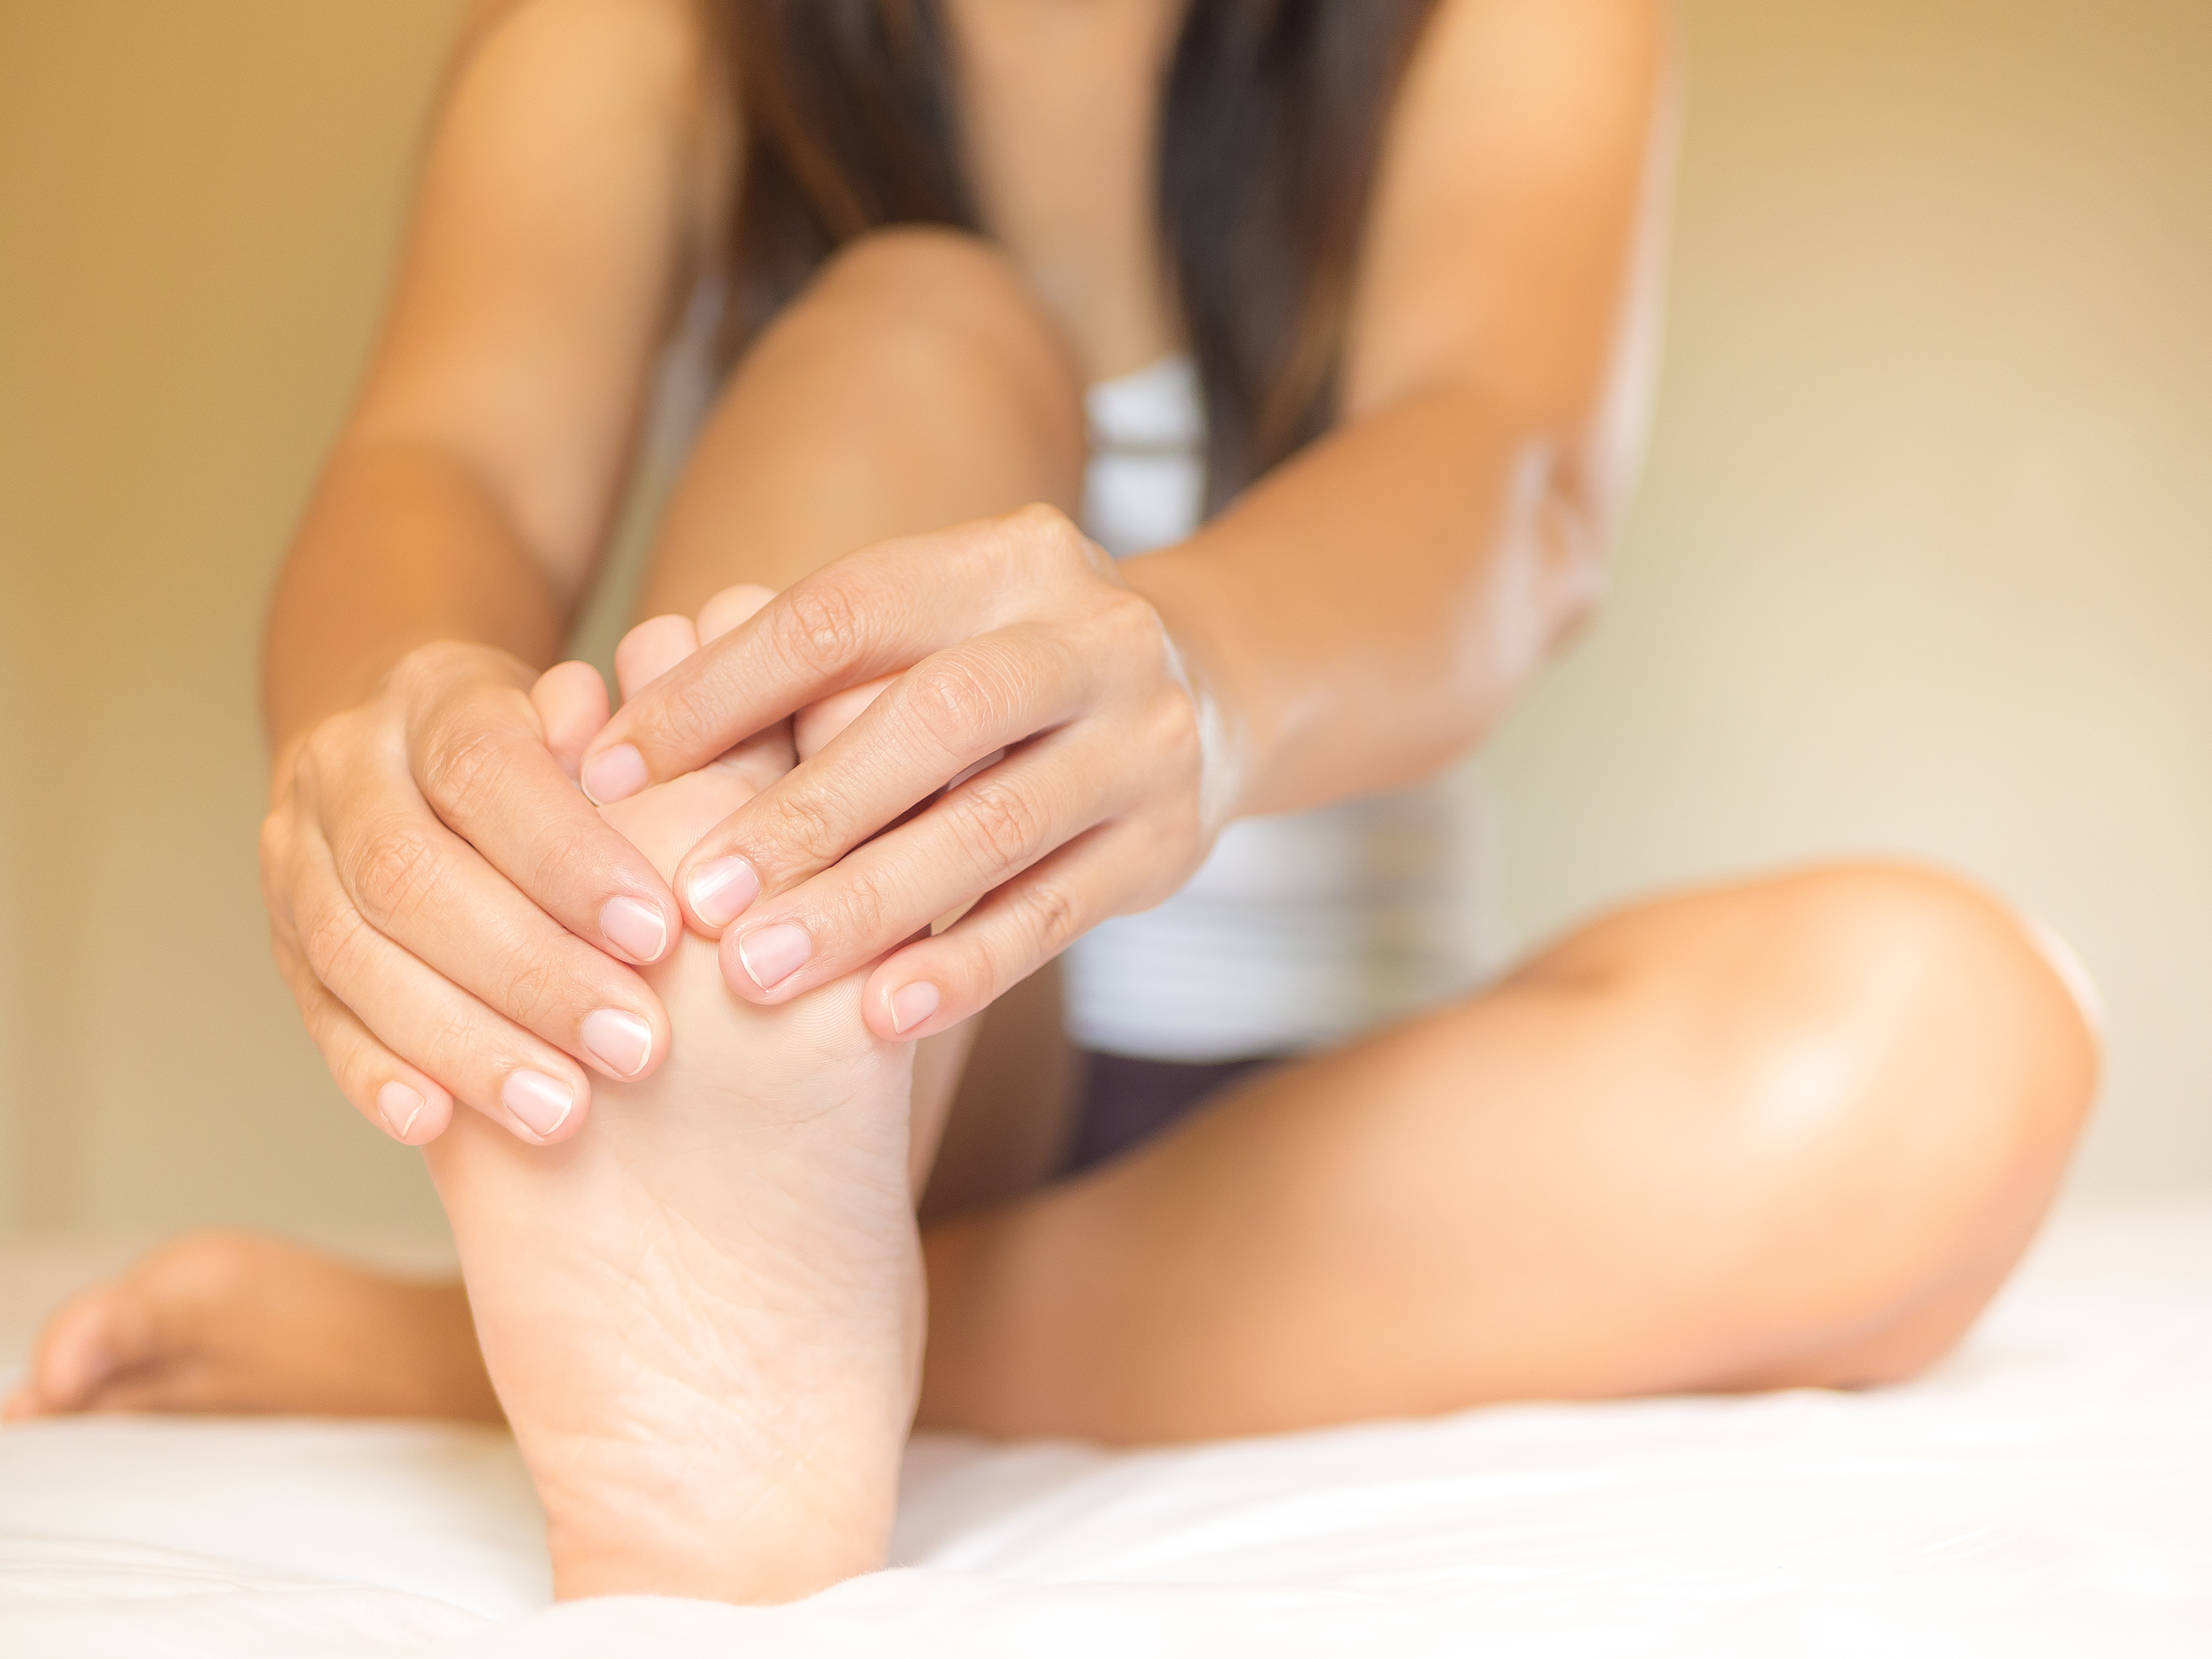 What Is Plantar Fasciitis And What Can You Do To Relieve The Pain